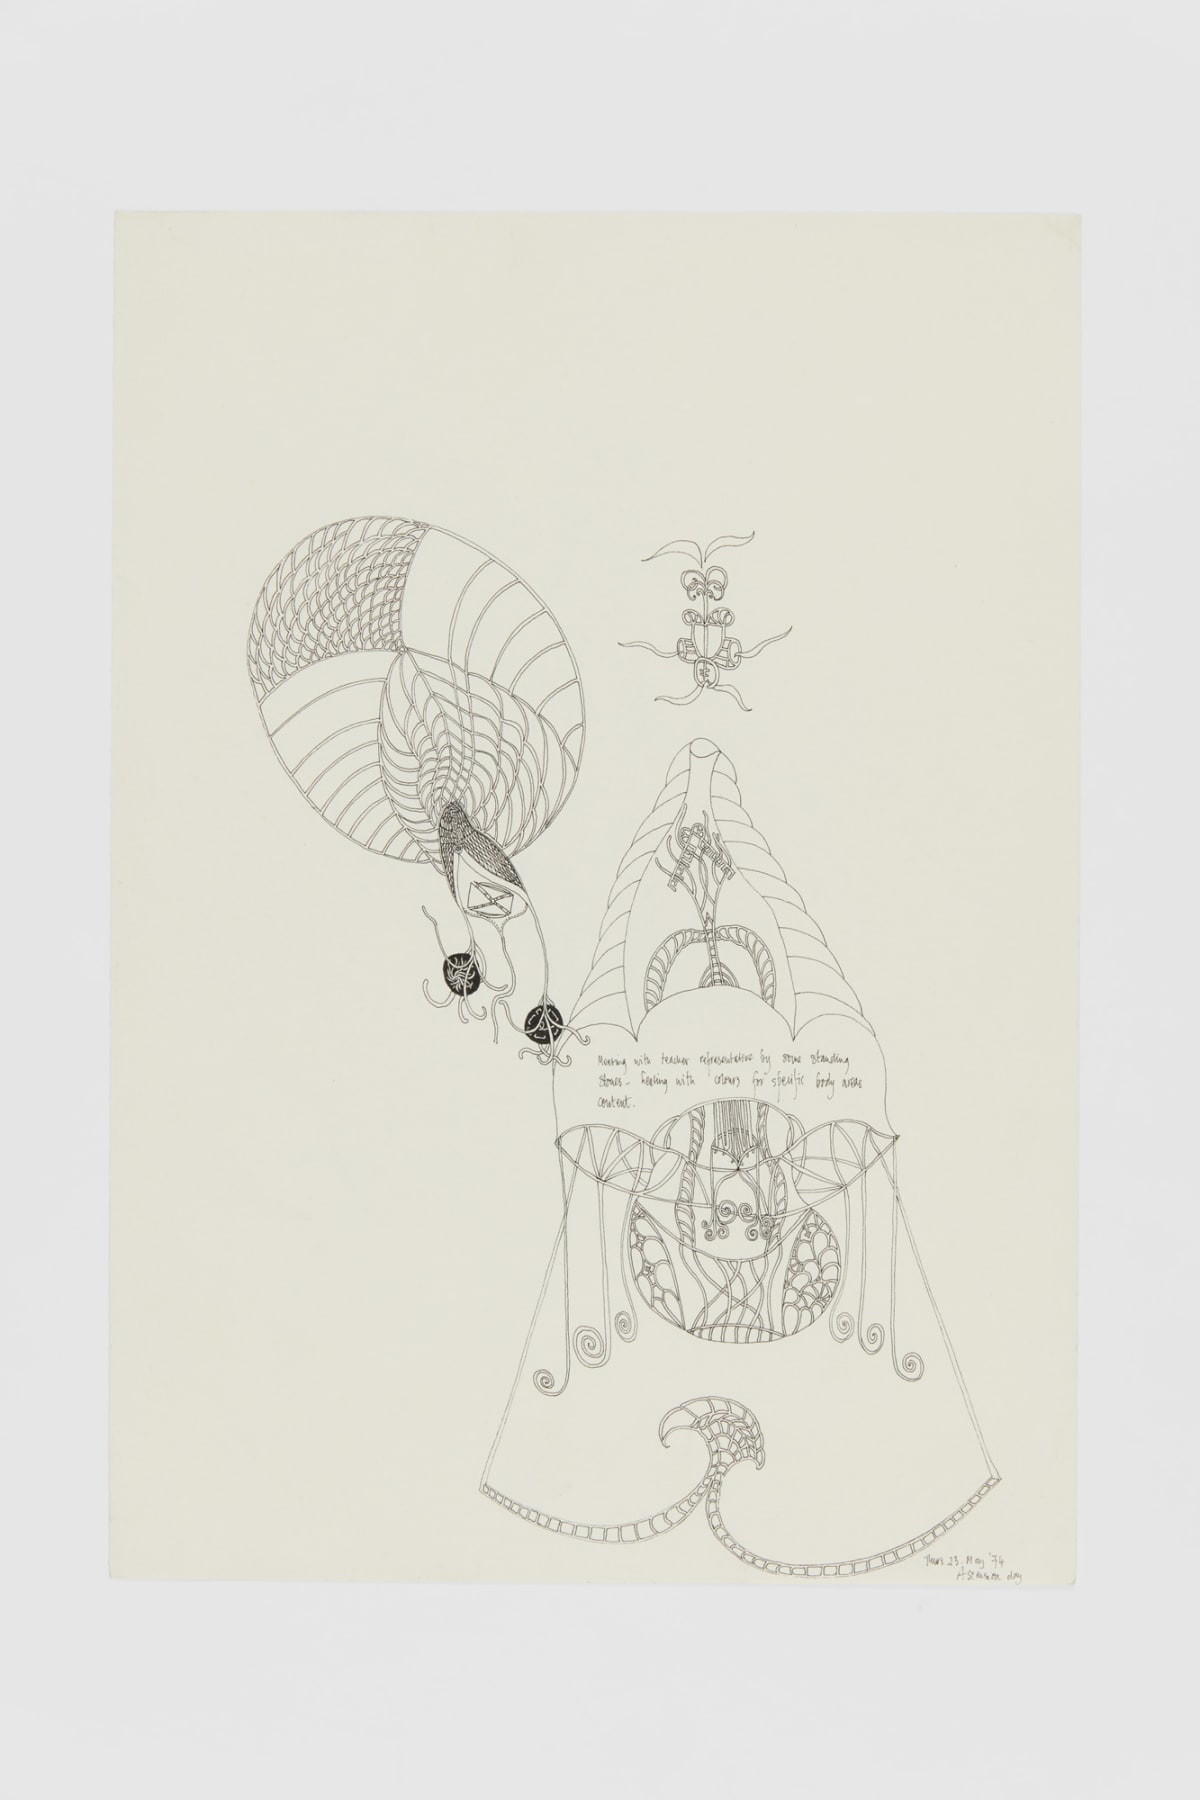 Ann CHURCHILL Thurs 23 May 74 Ascension Day (Daily drawings), 1974 Pen on paper 29.7 x 20.9 cm